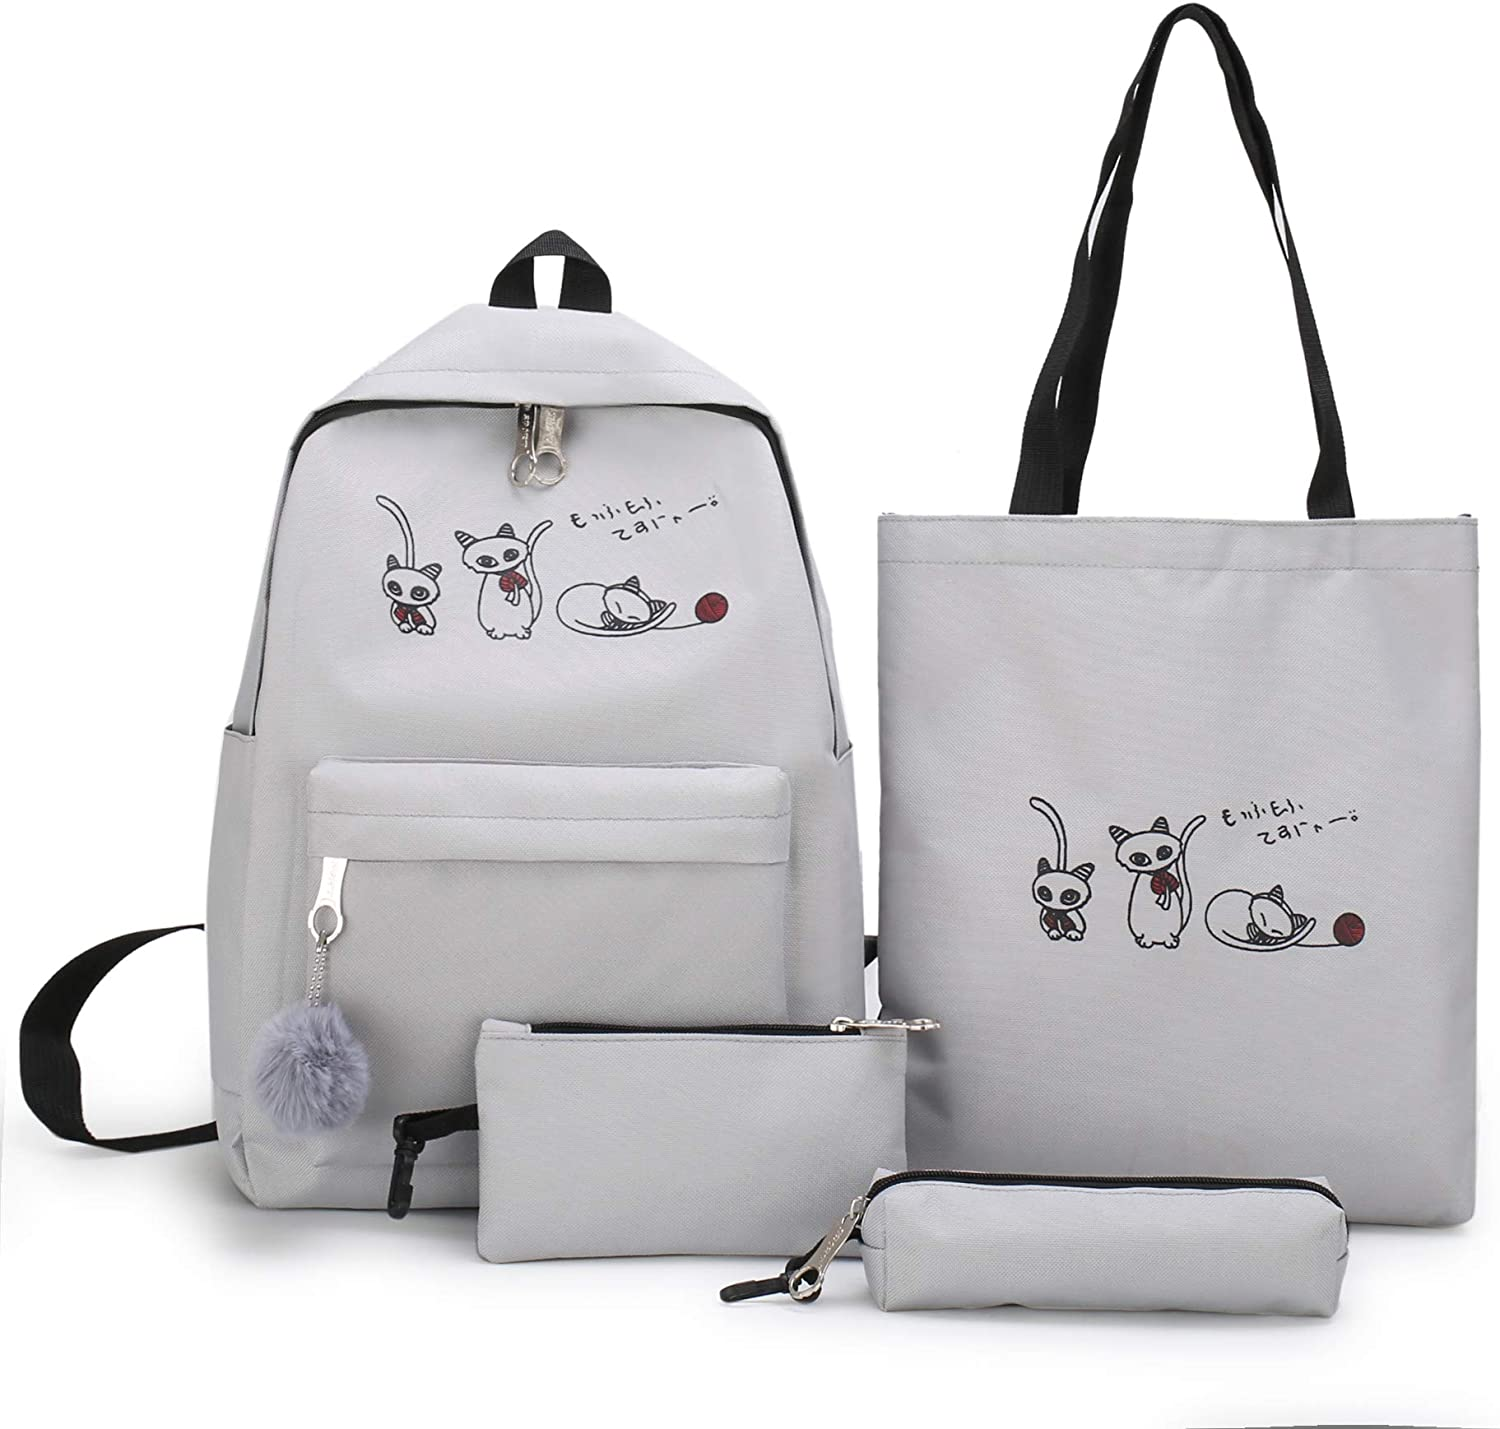 School Canvas Backpack Teens Bag Bookbags Set 4 in 1 Prints Cartoon Cute cat